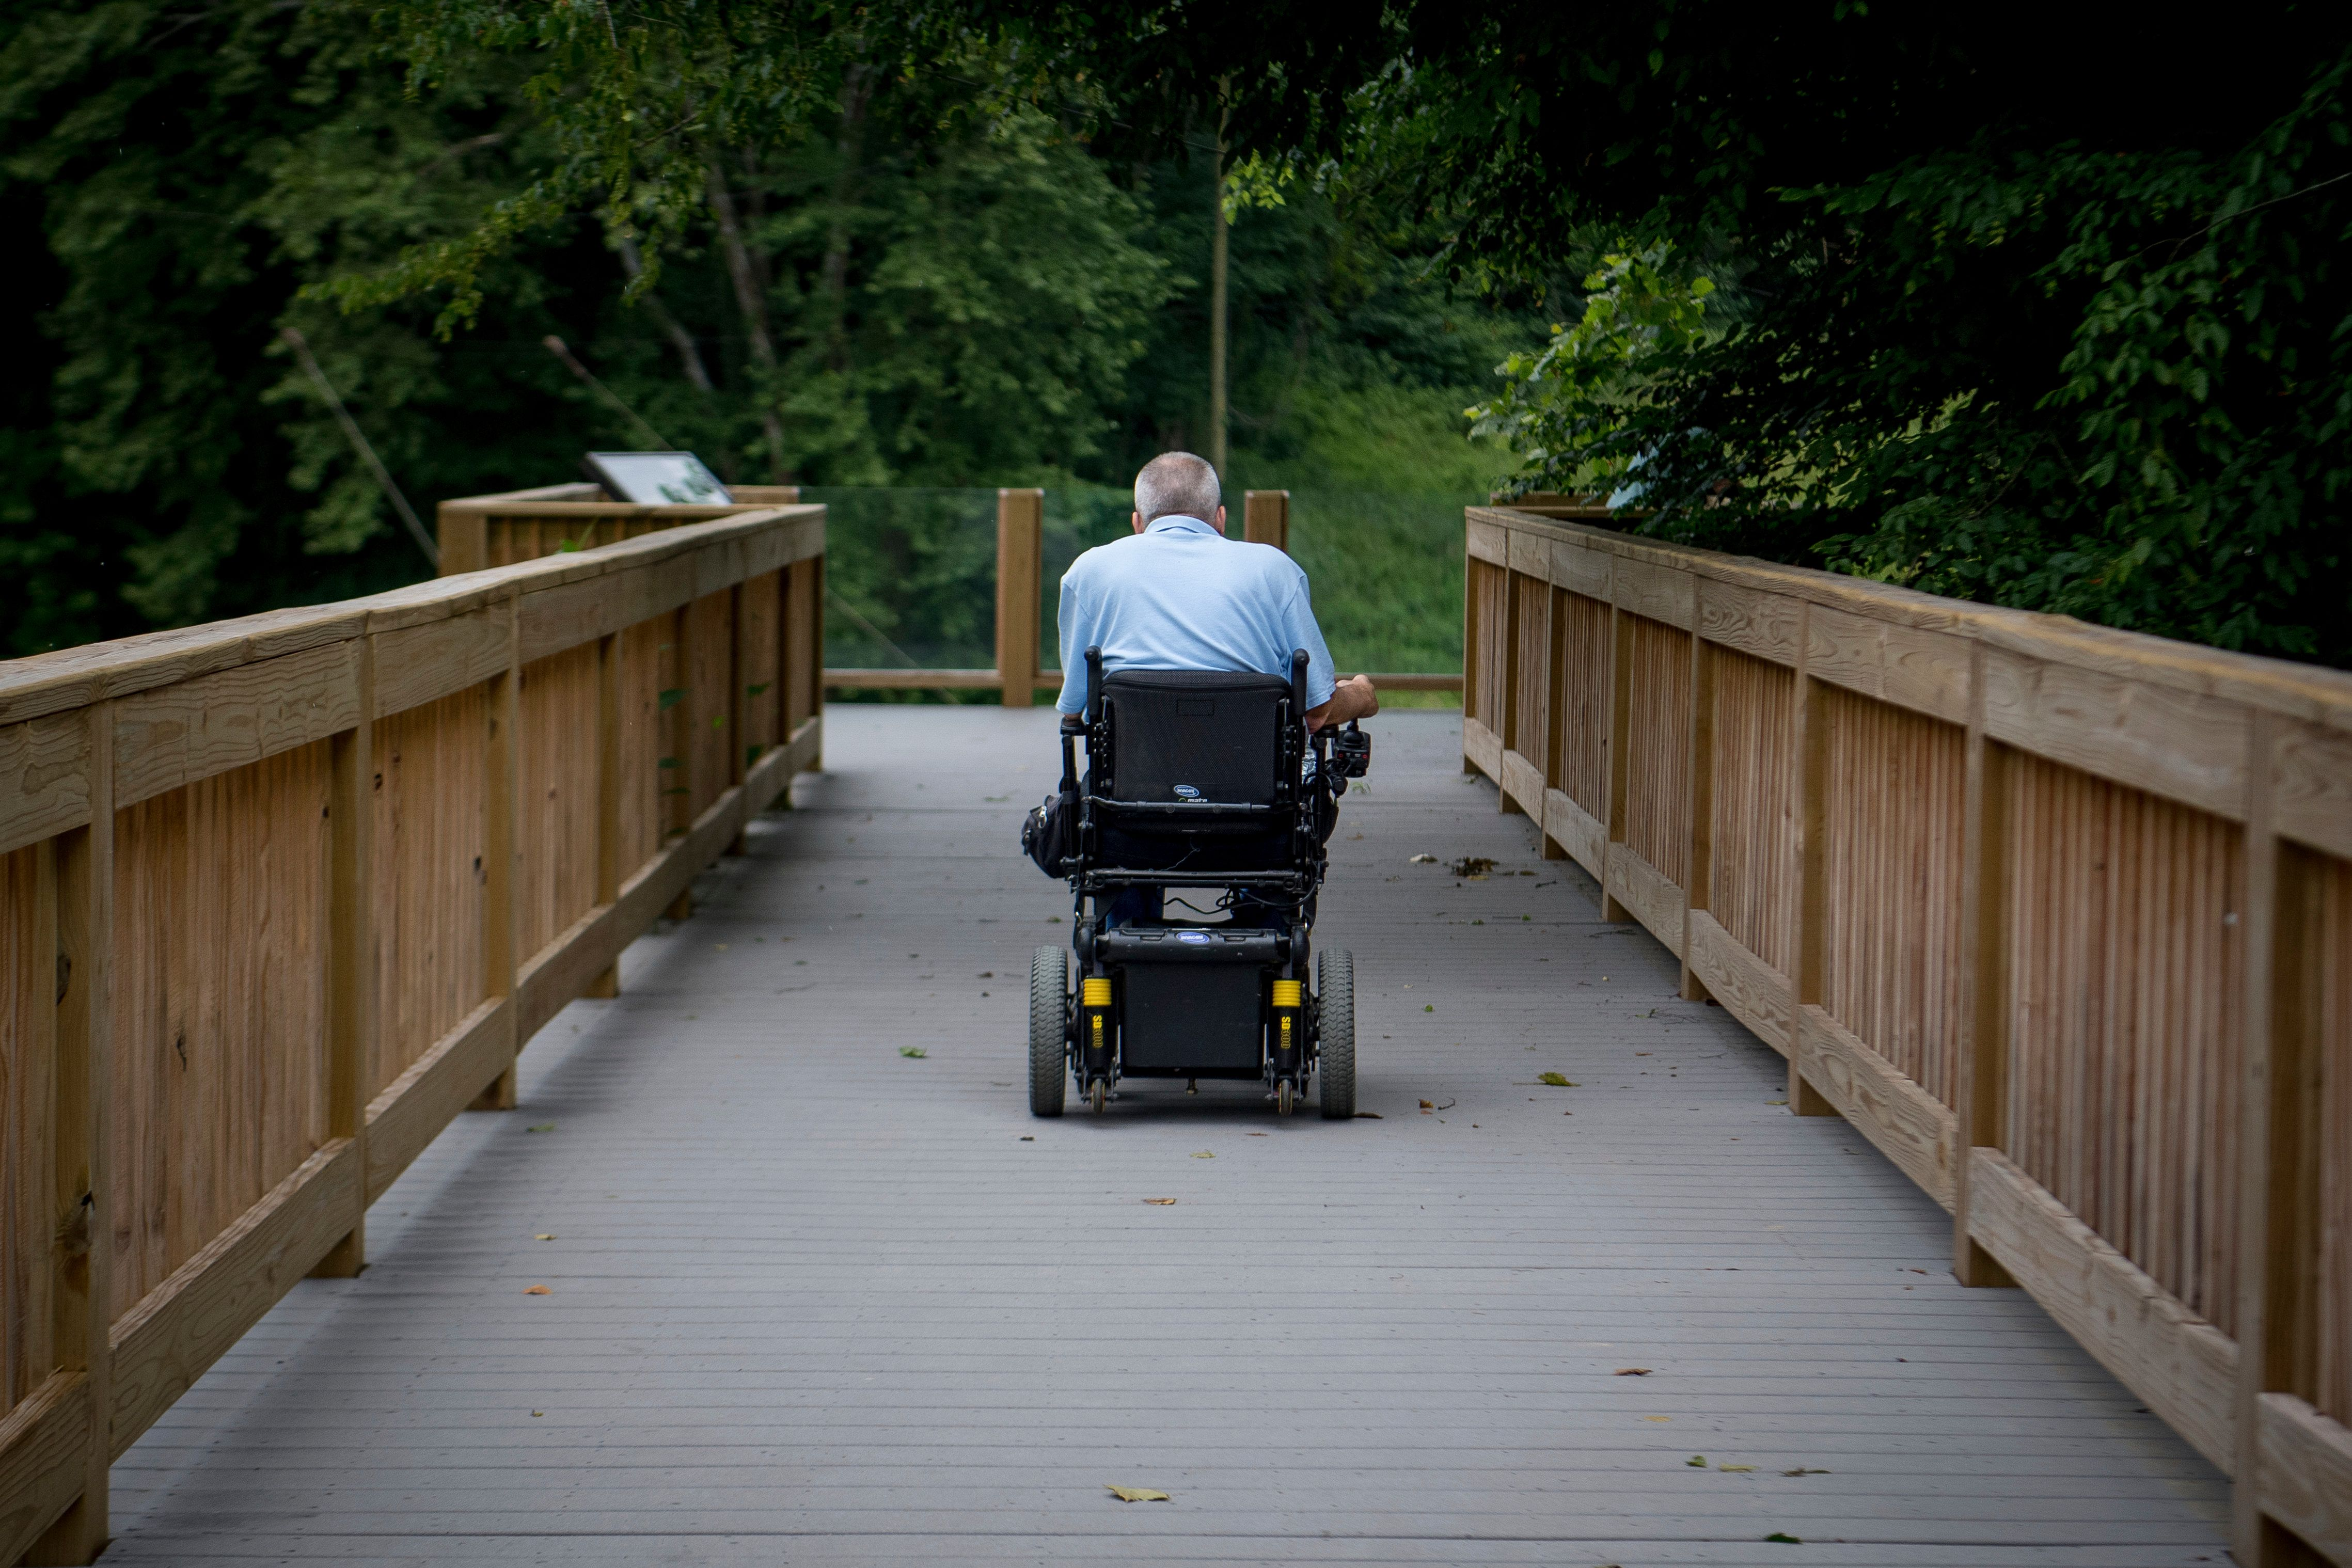 David Allgood uses a trail adapted for persons with disabilities to view a scenic overlook of the Green River at Mammoth Cave National Park in Cave City Ky Friday June 22 2018